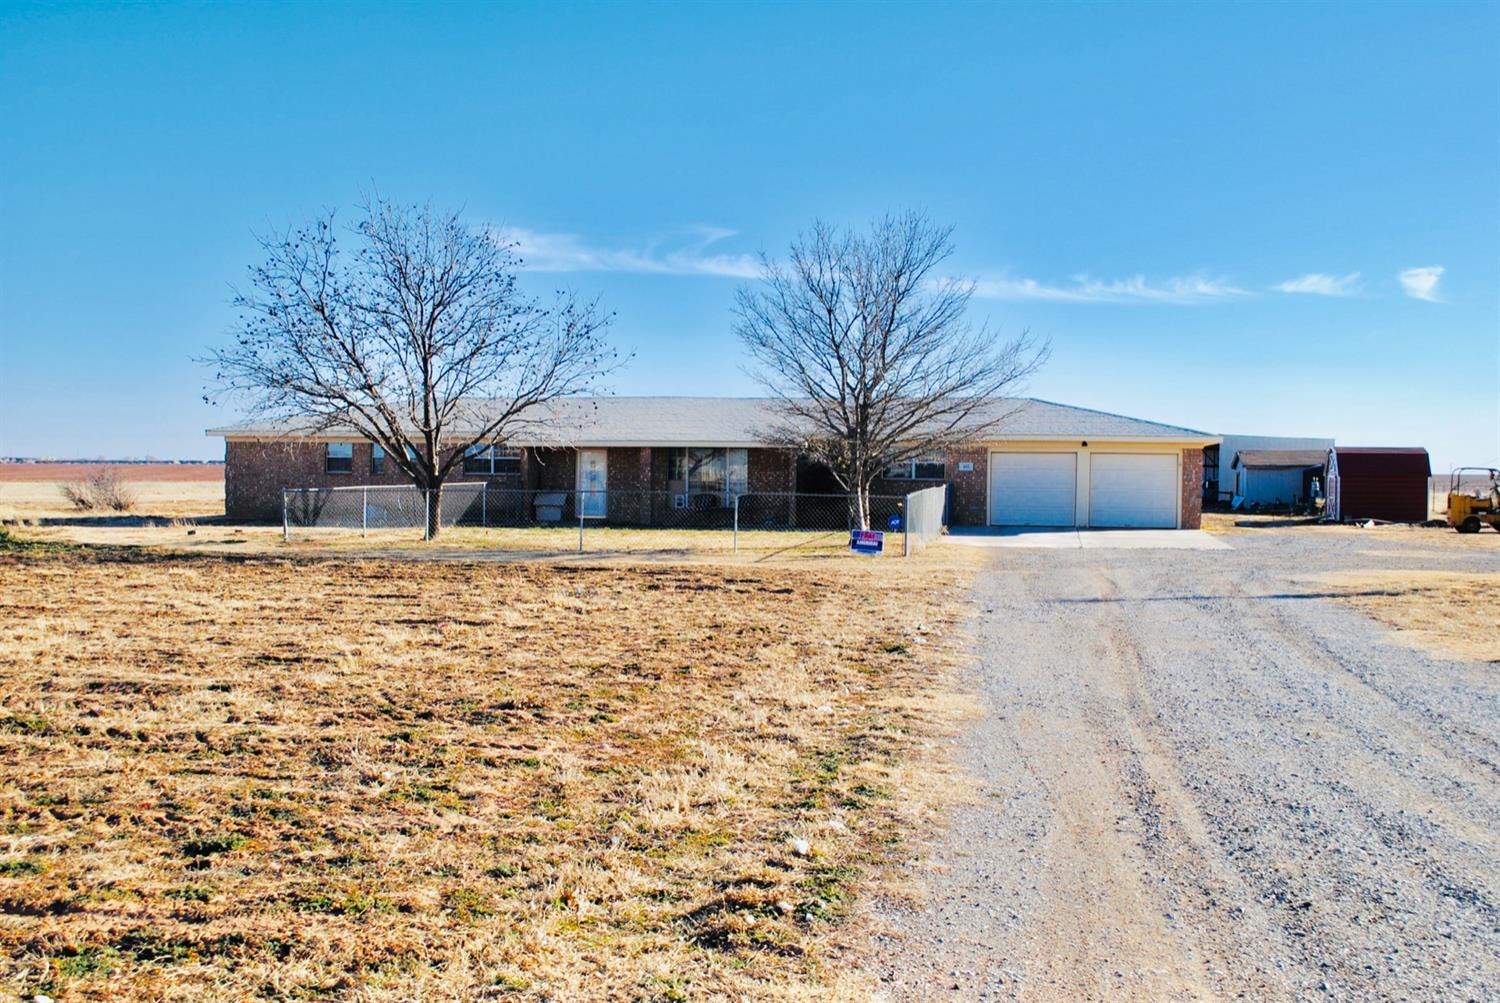 5 acres in South Lubbock! Great home on 1 acre with 4 additional acres alongside! 4 acres have RV/mobile home lots with utility hook ups and a well; great potential for monthly income. See private remarks for details on monthly rent. Motivated seller, bring your buyers today!